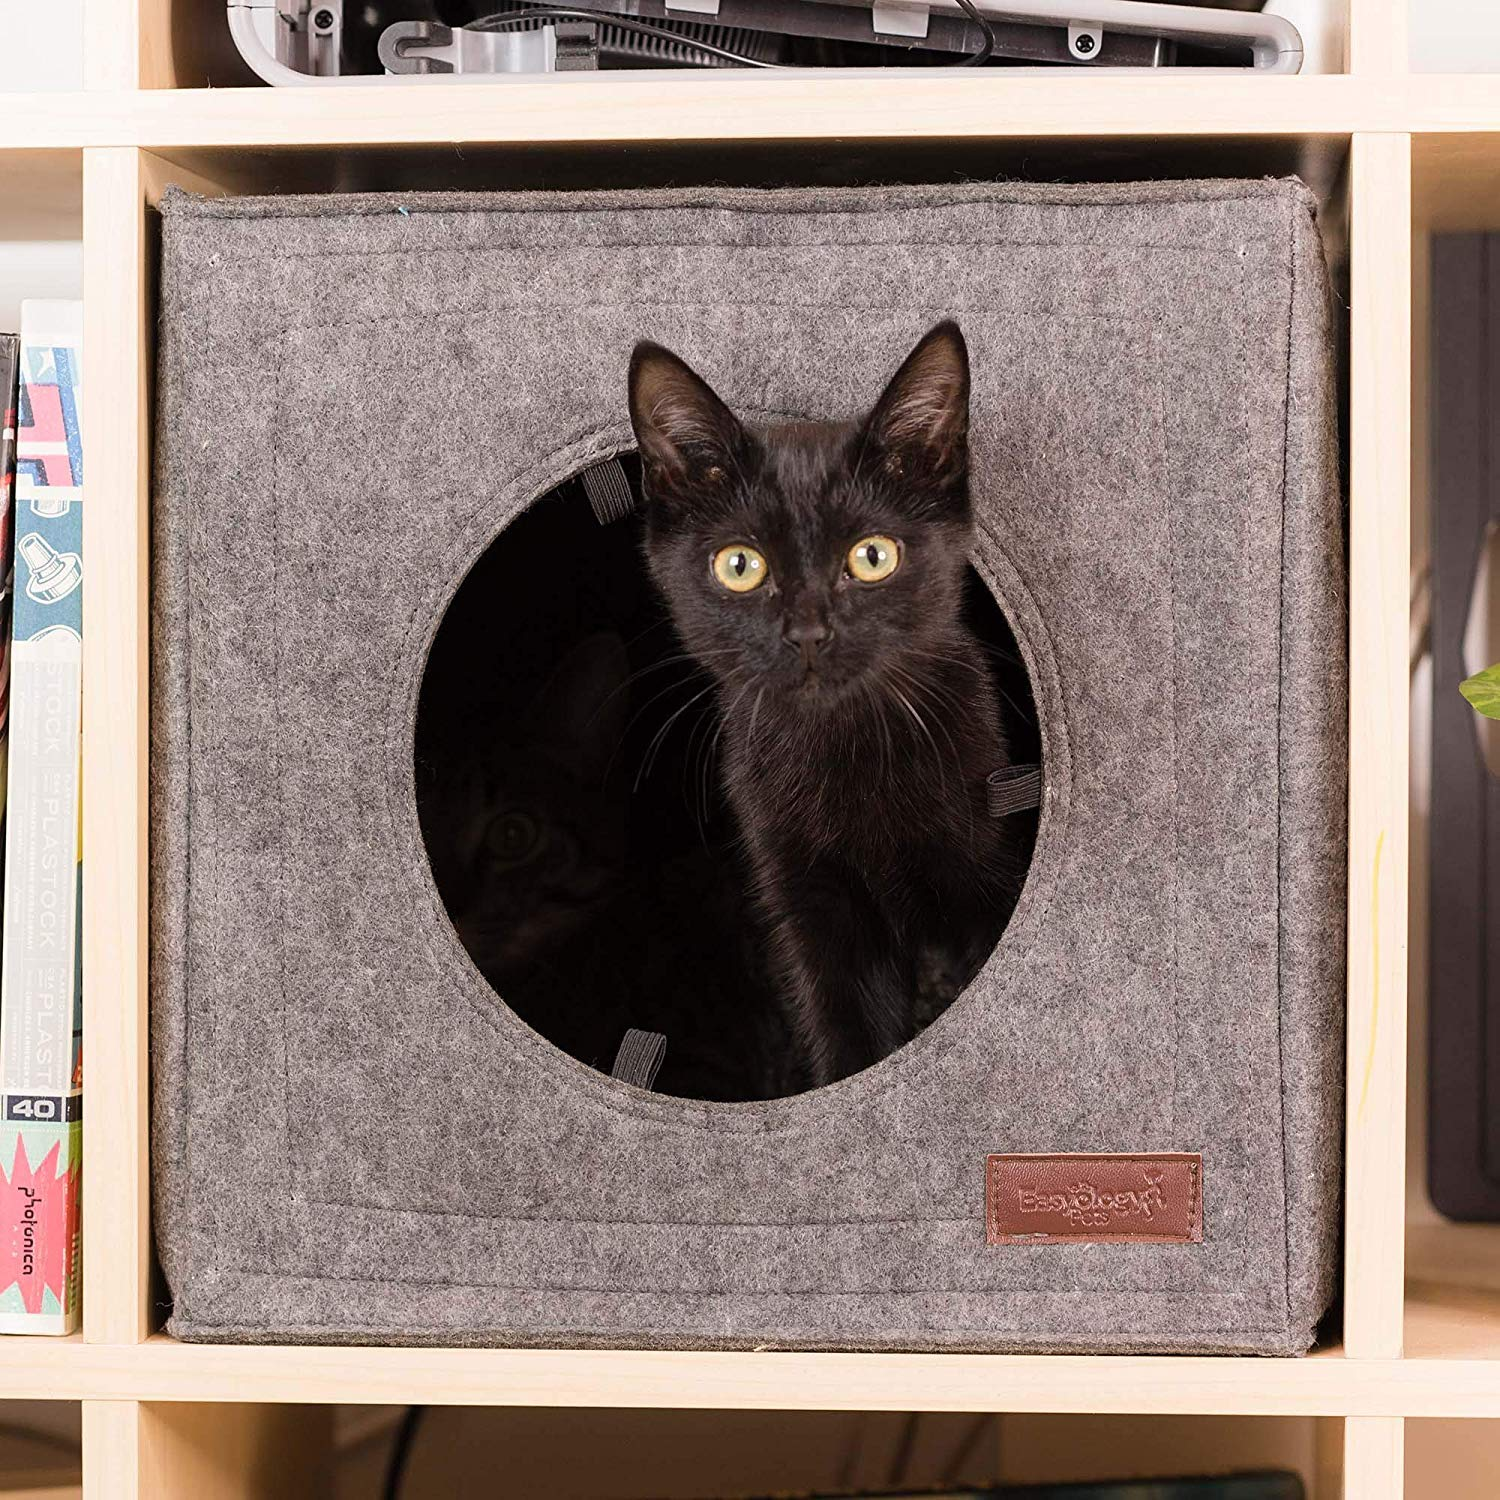 Thick Felt Cat Cave for IKEA Shelf - Cat Bed with Pillow & Reinforced Top - Easy Travel Cat Cube is Machine Washable - Foldable Cat Houses for Indoor Cats (Gray) by Easyology